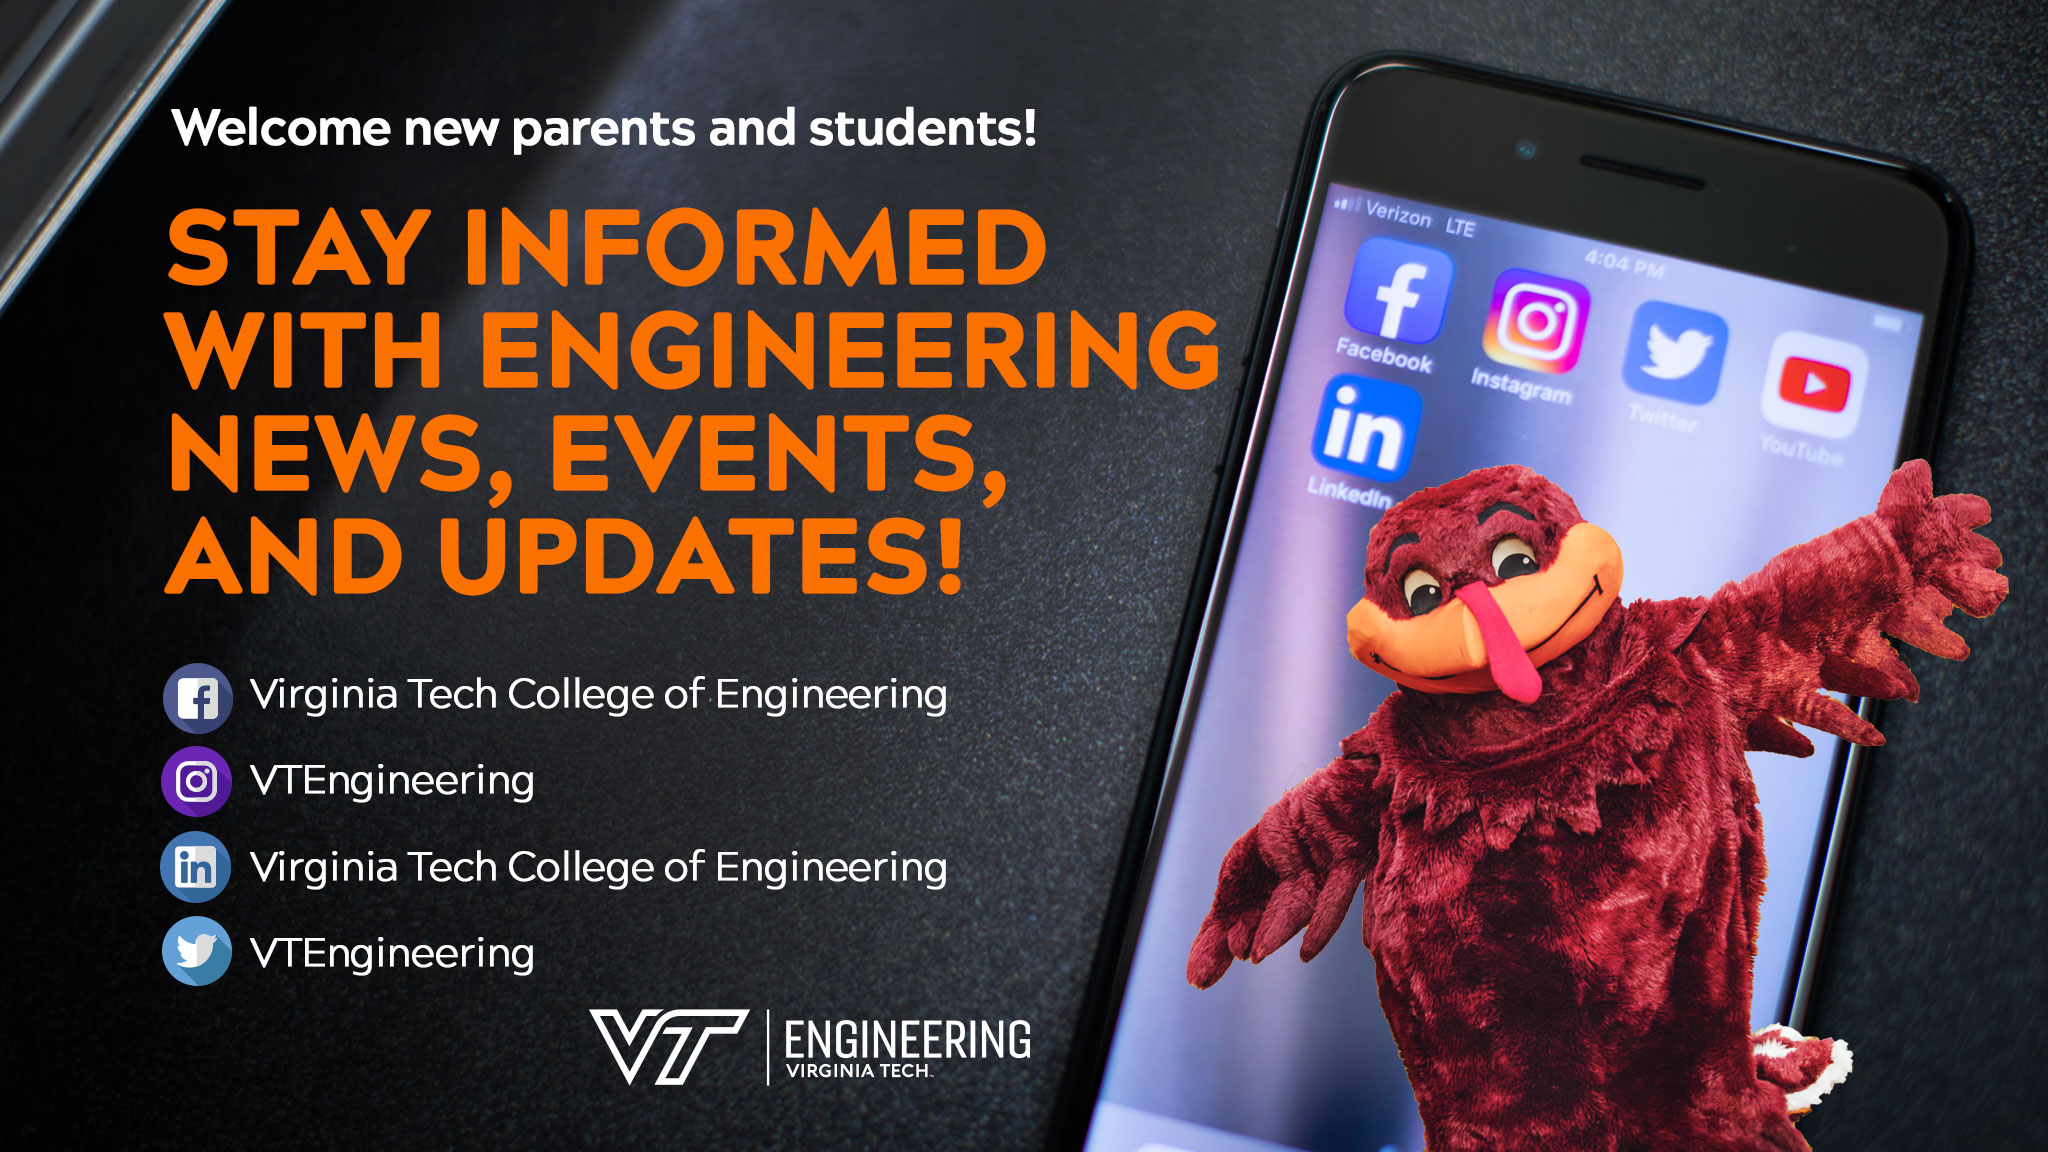 Stay informed with engineering news, events, and updates! Follow us on social media.